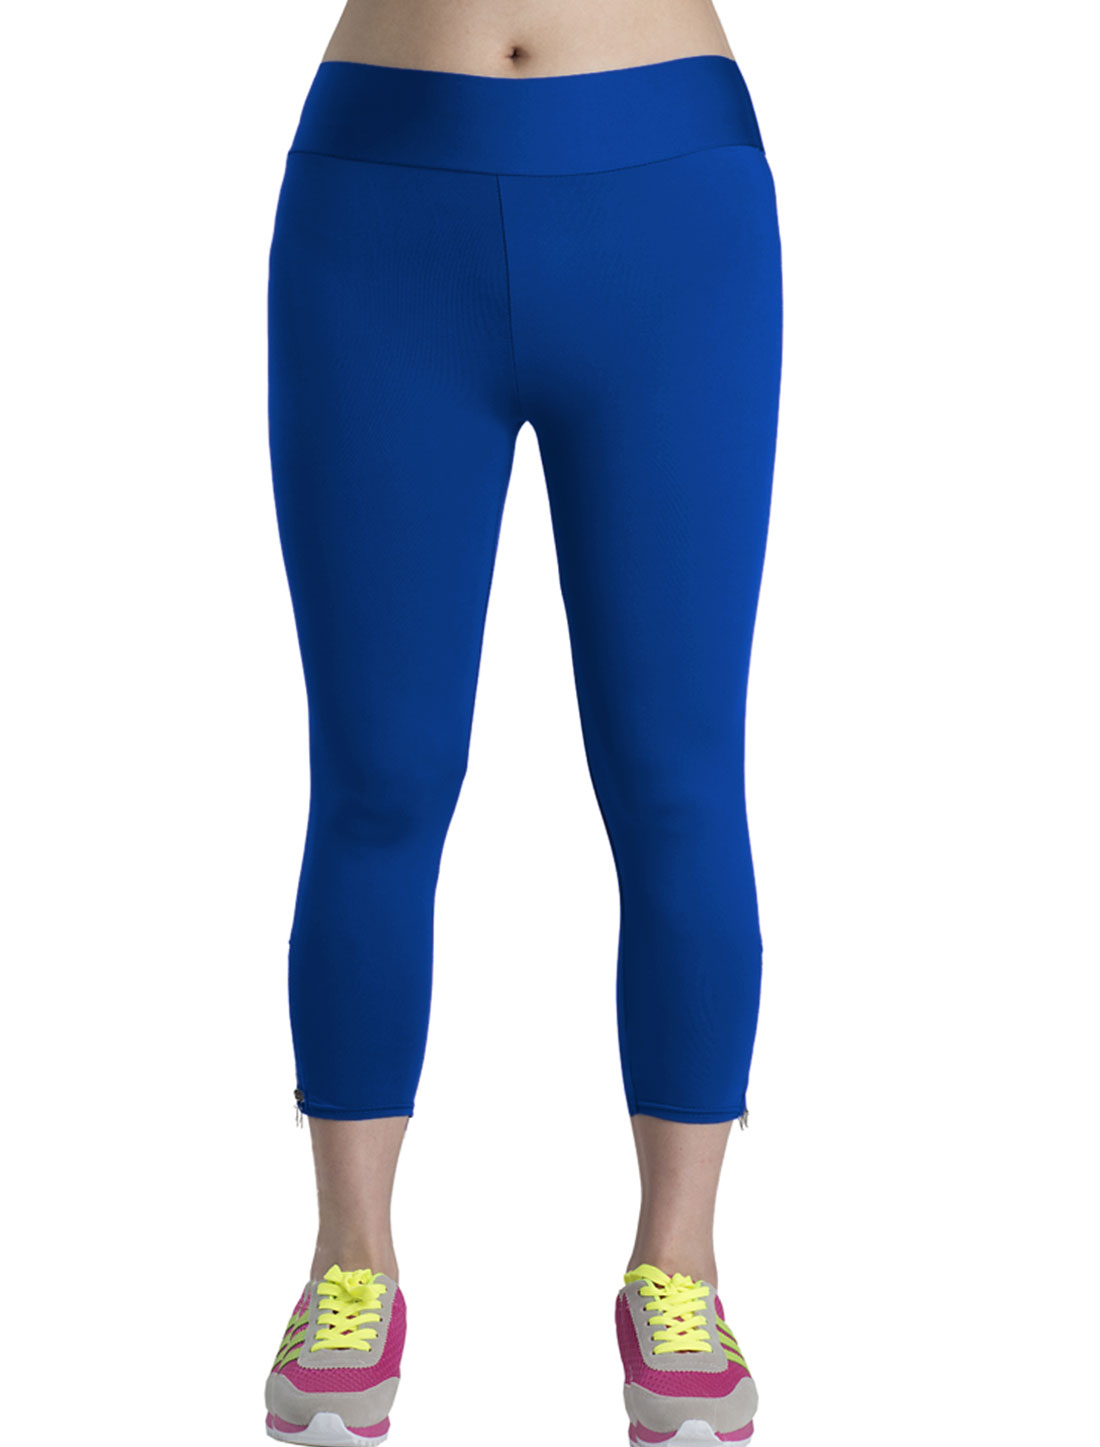 Lady Zipper Side Mid Rise Casual Capri Pants Royal Blue M